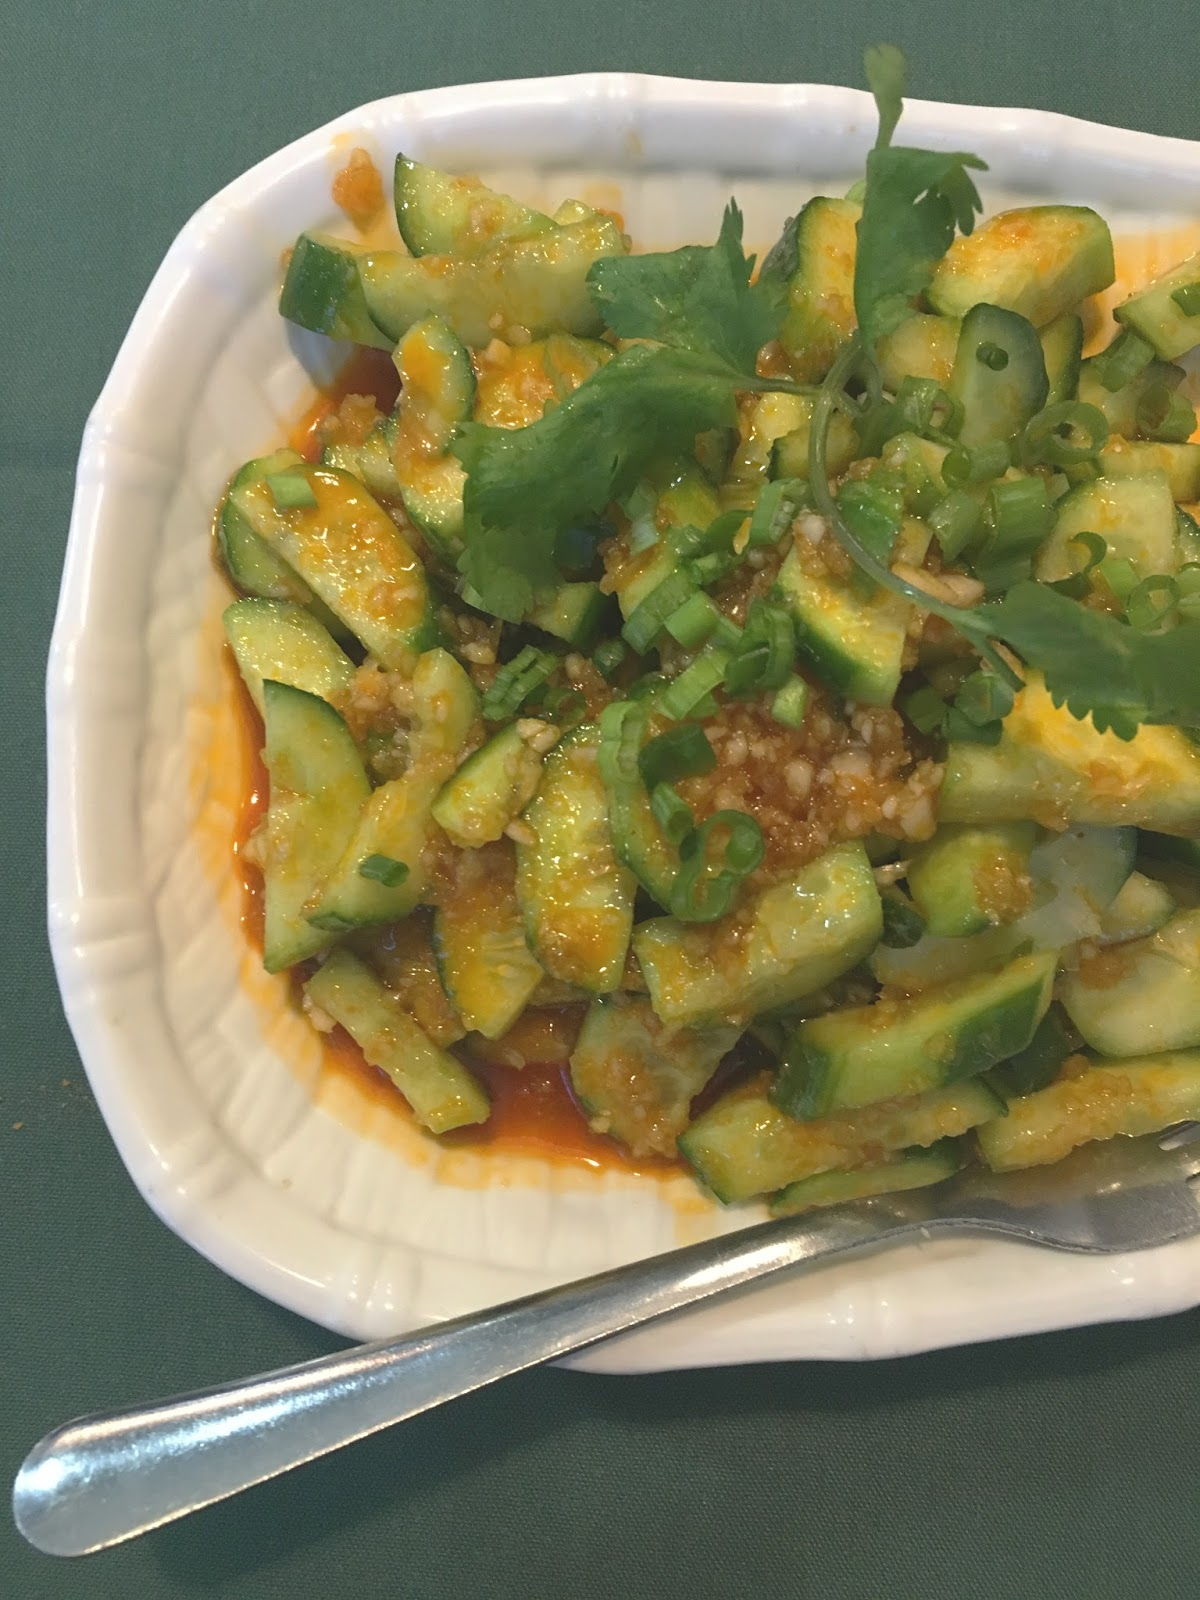 garlic-flavored cucumber at Cooking Girl - A Chinese restaurant, in Houston